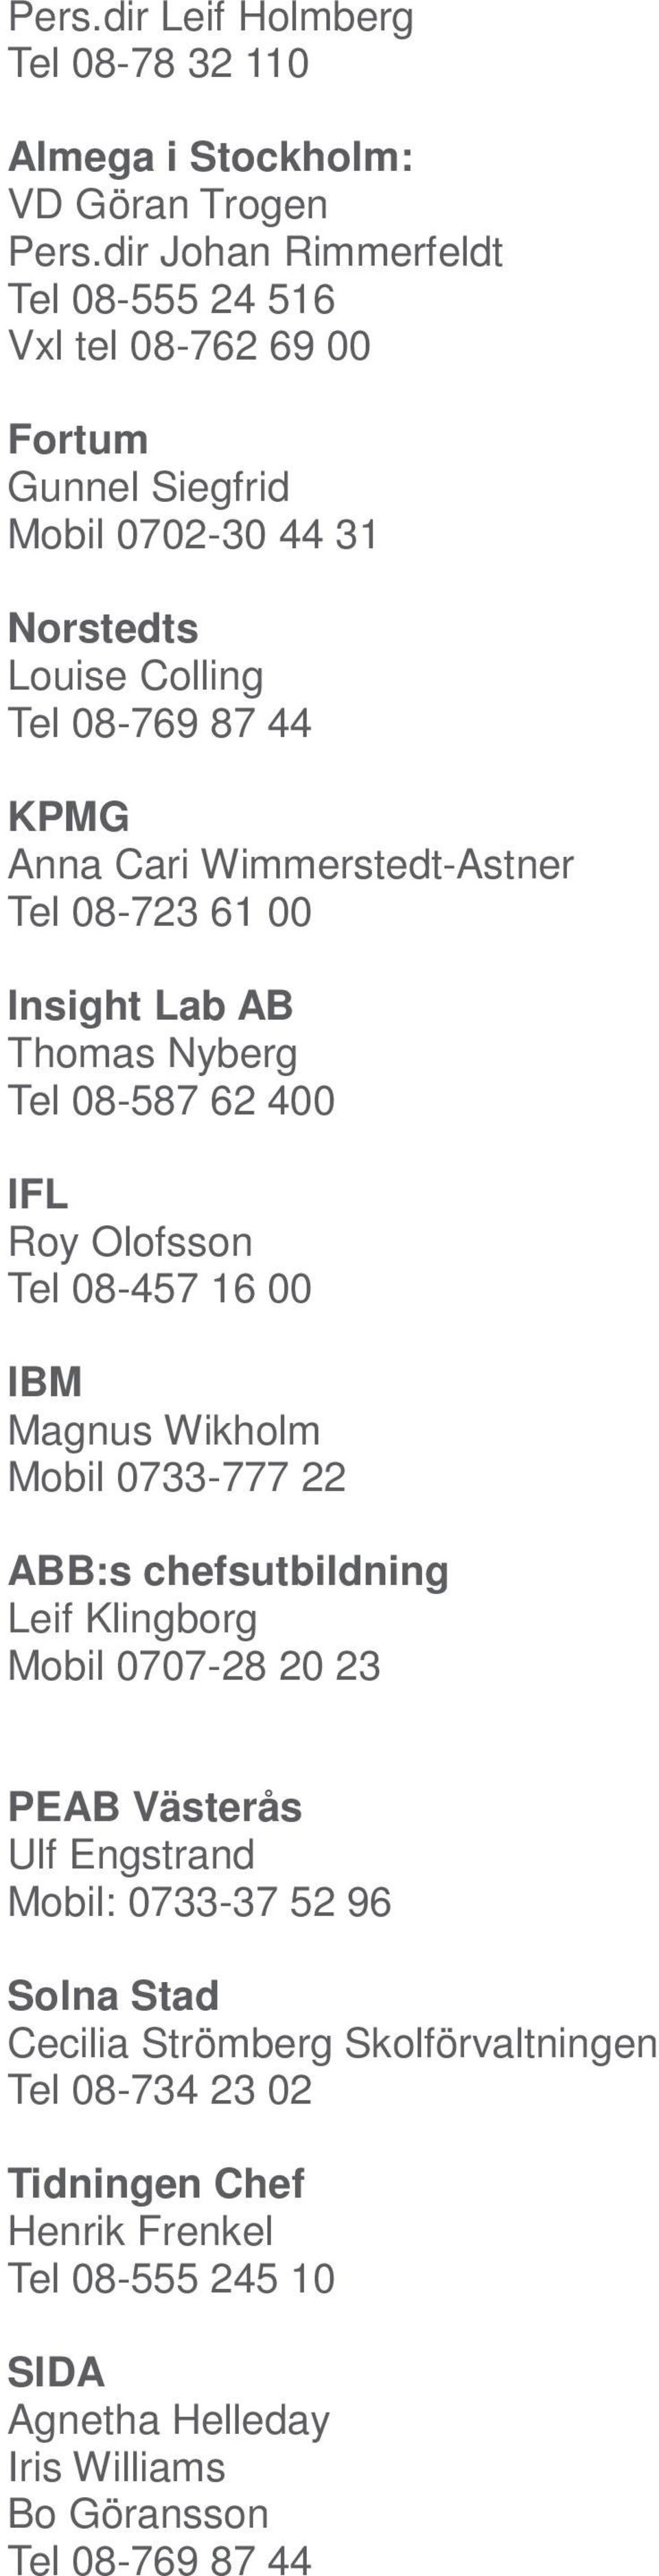 Wimmerstedt-Astner Tel 08-723 61 00 Insight Lab AB Thomas Nyberg Tel 08-587 62 400 IFL Roy Olofsson Tel 08-457 16 00 IBM Magnus Wikholm Mobil 0733-777 22 ABB:s